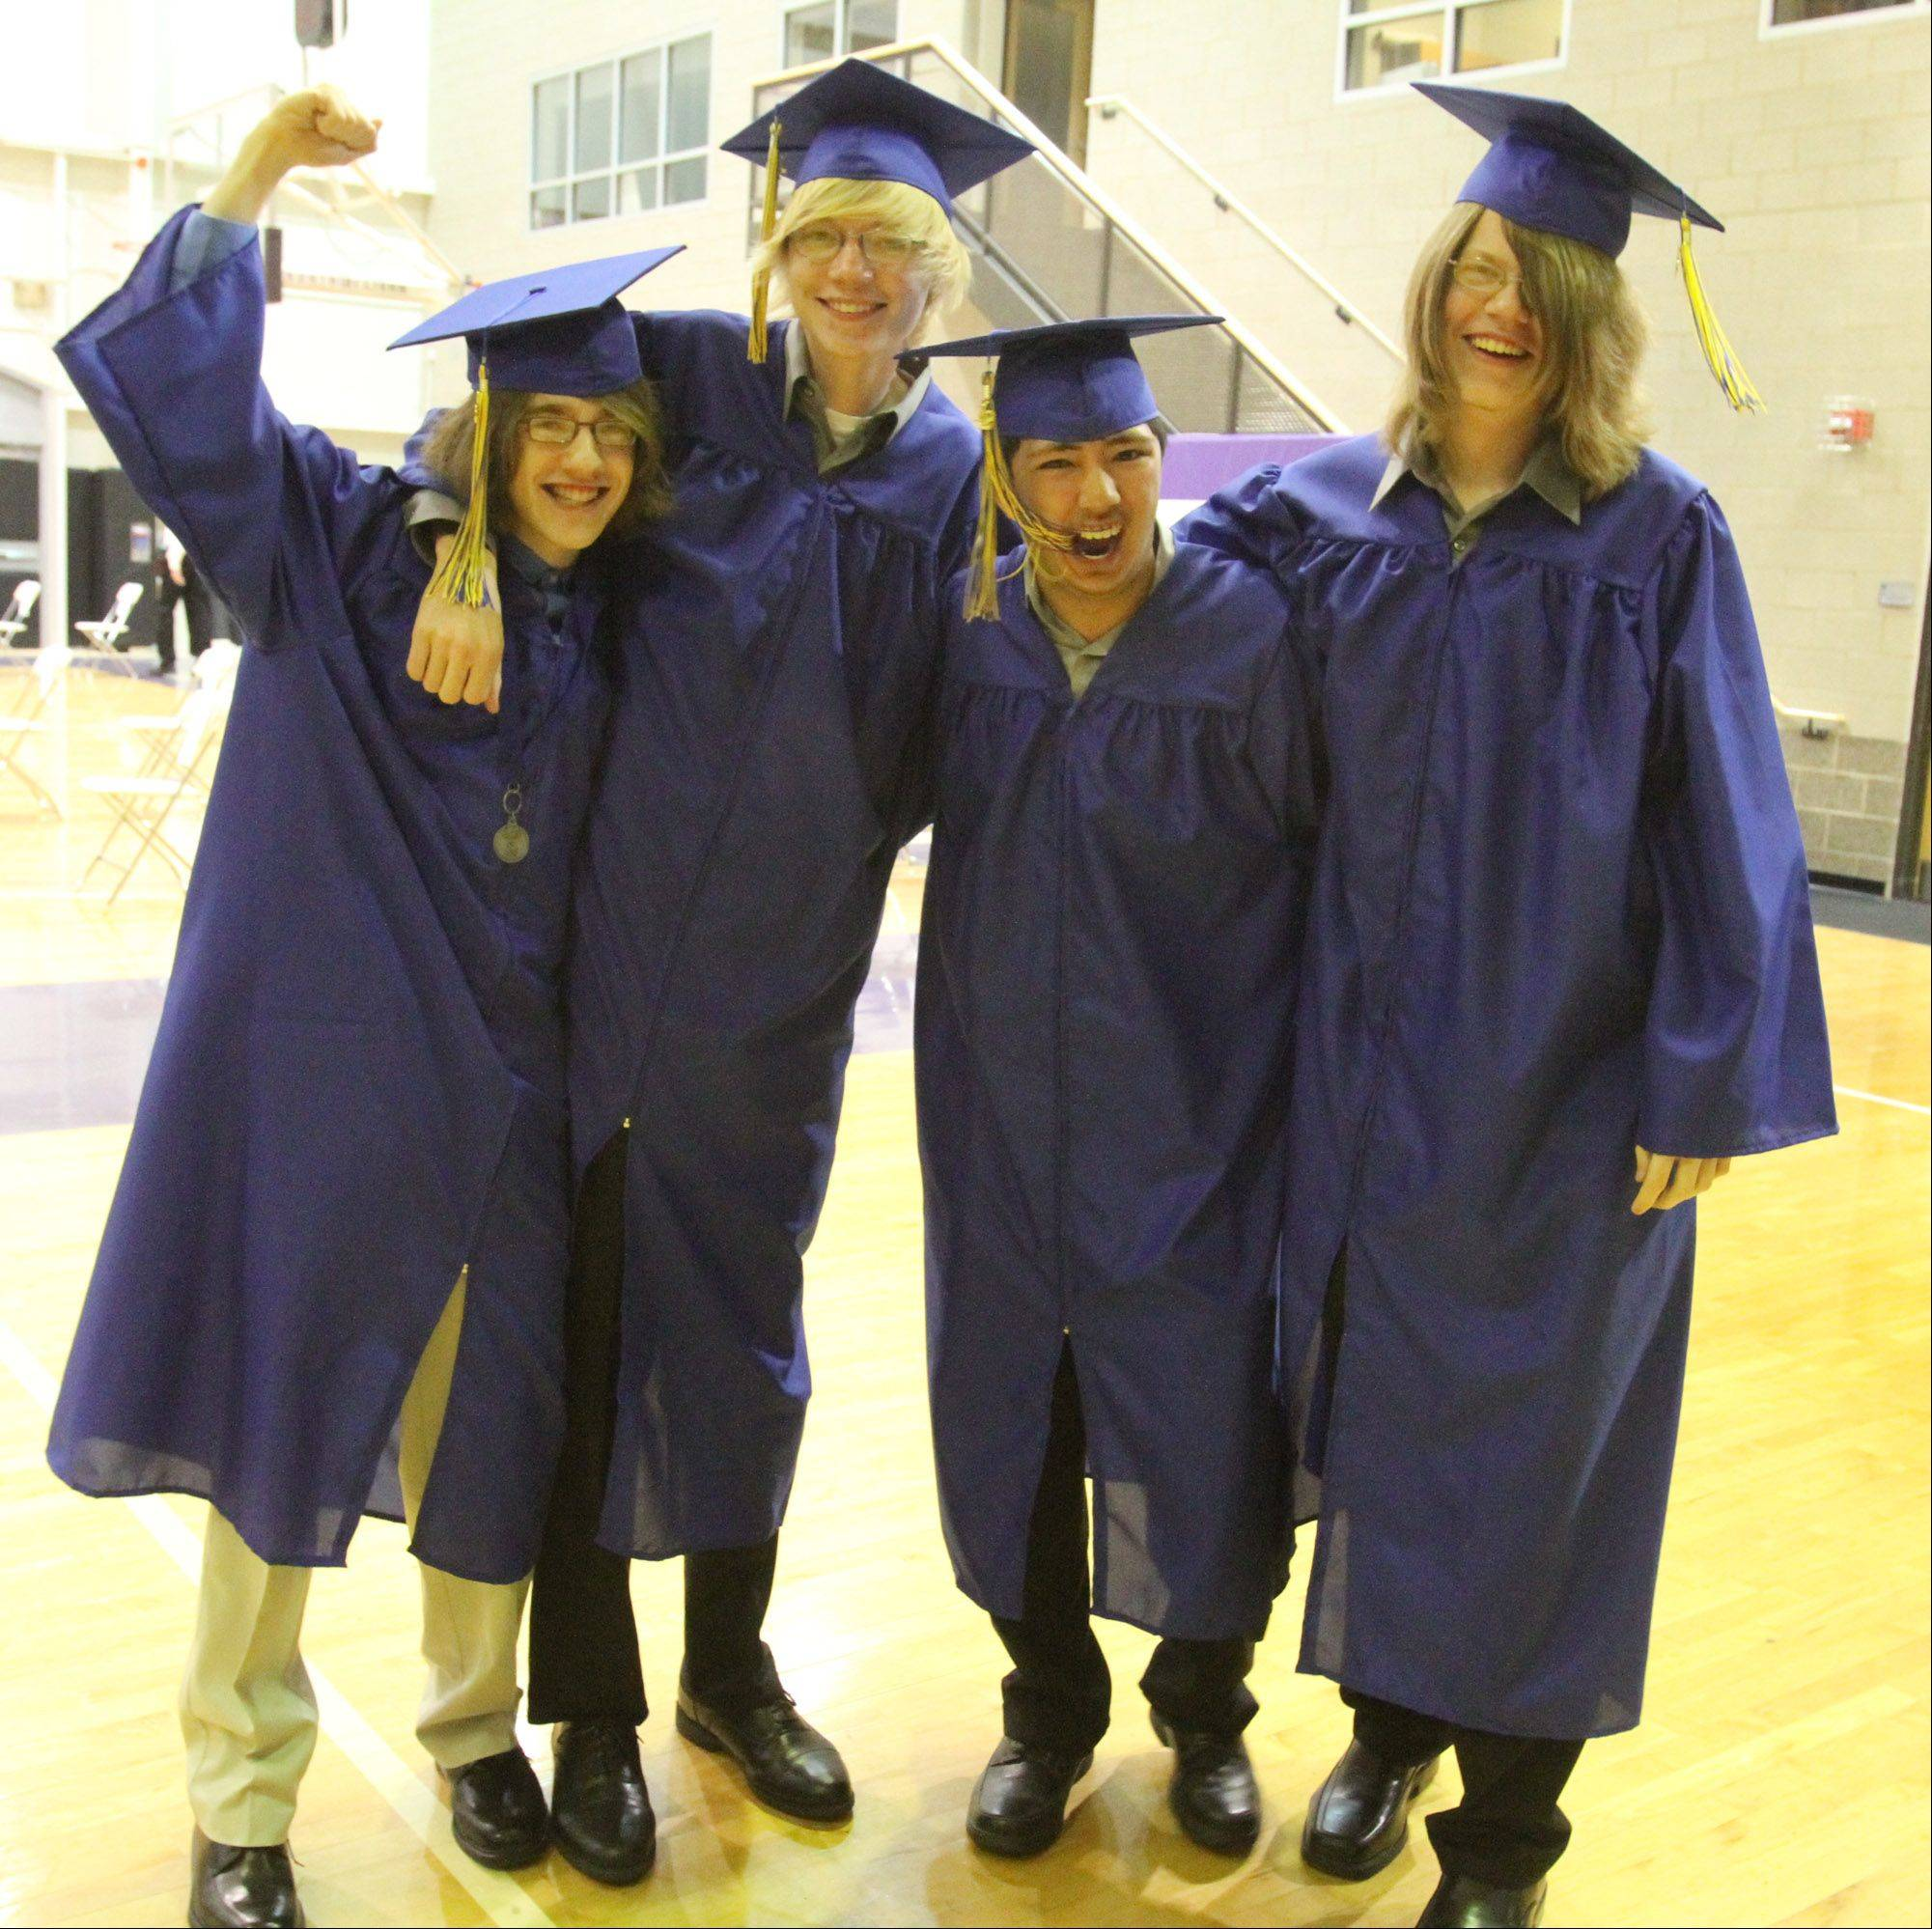 Images from the Warren Township High School graduation on Saturday, May 26 in Evanston.